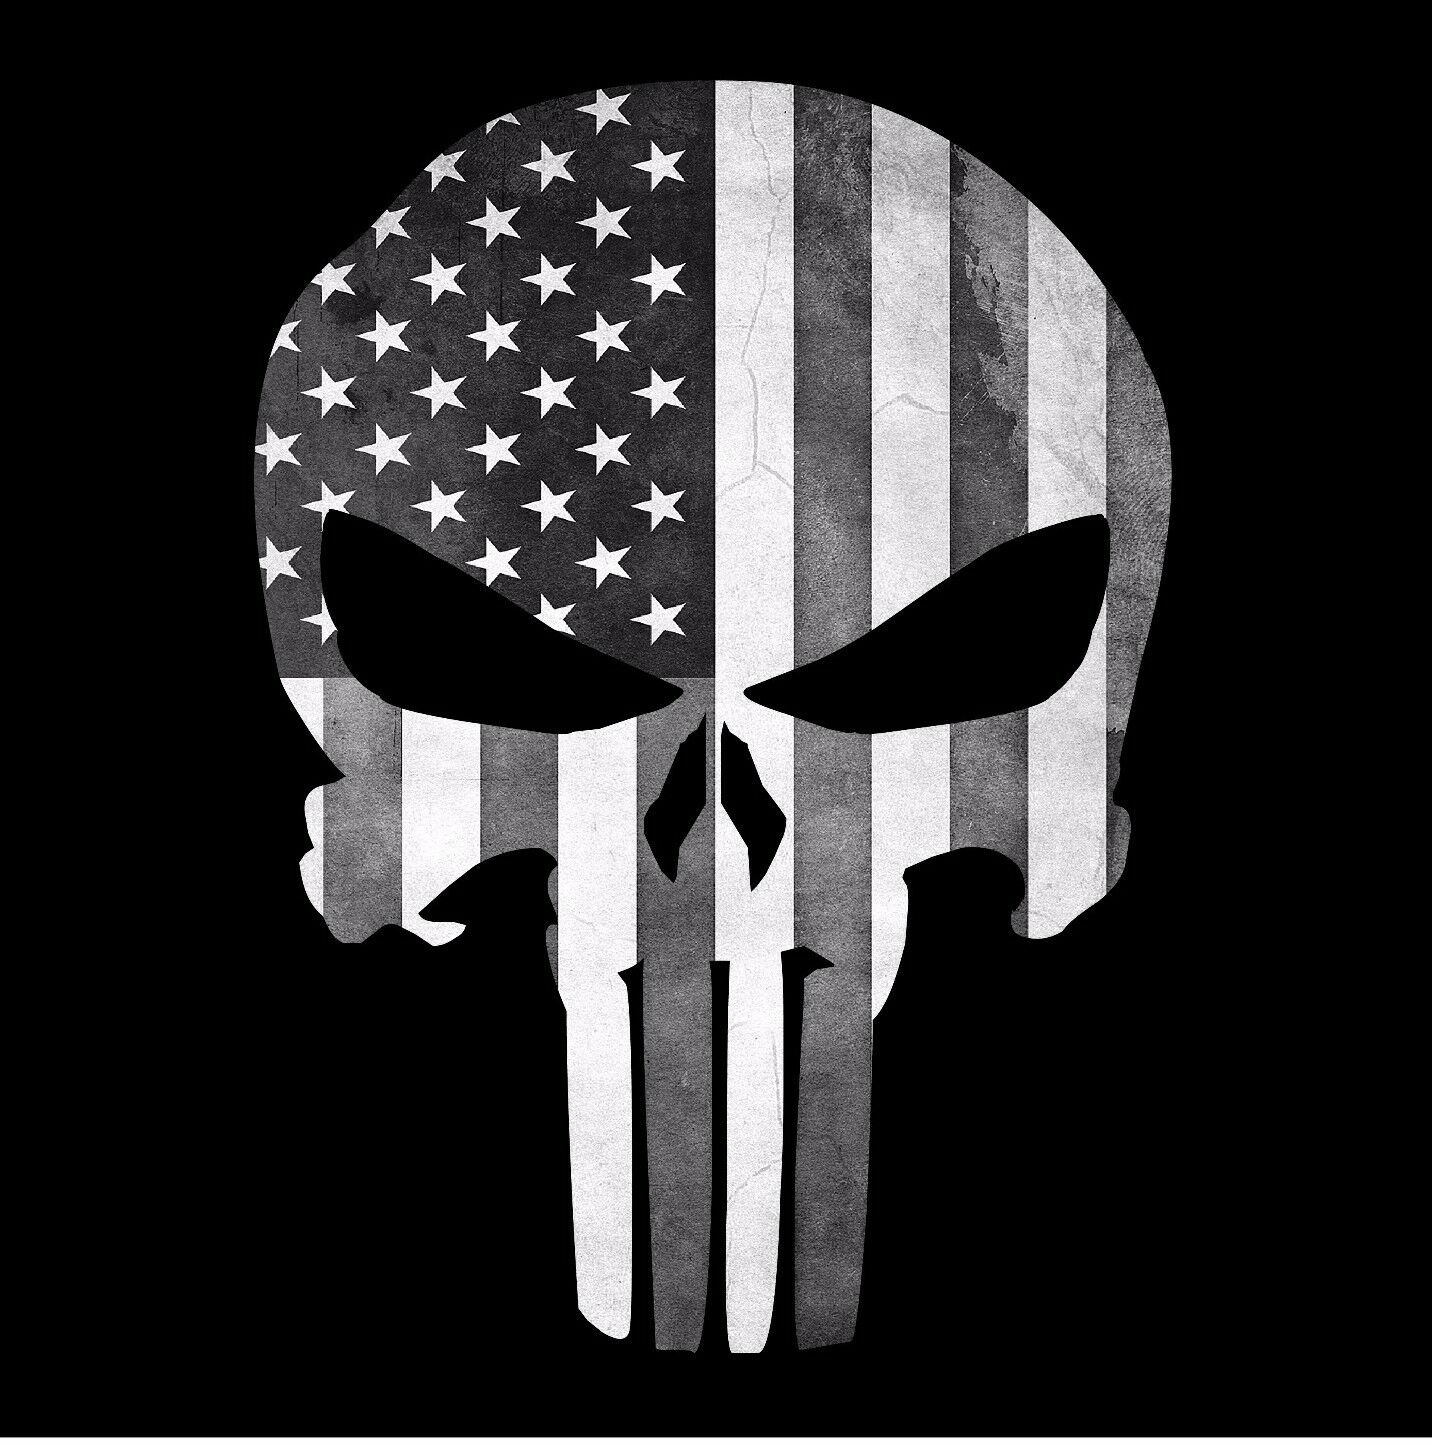 punisher skull flag american decal graphic sticker